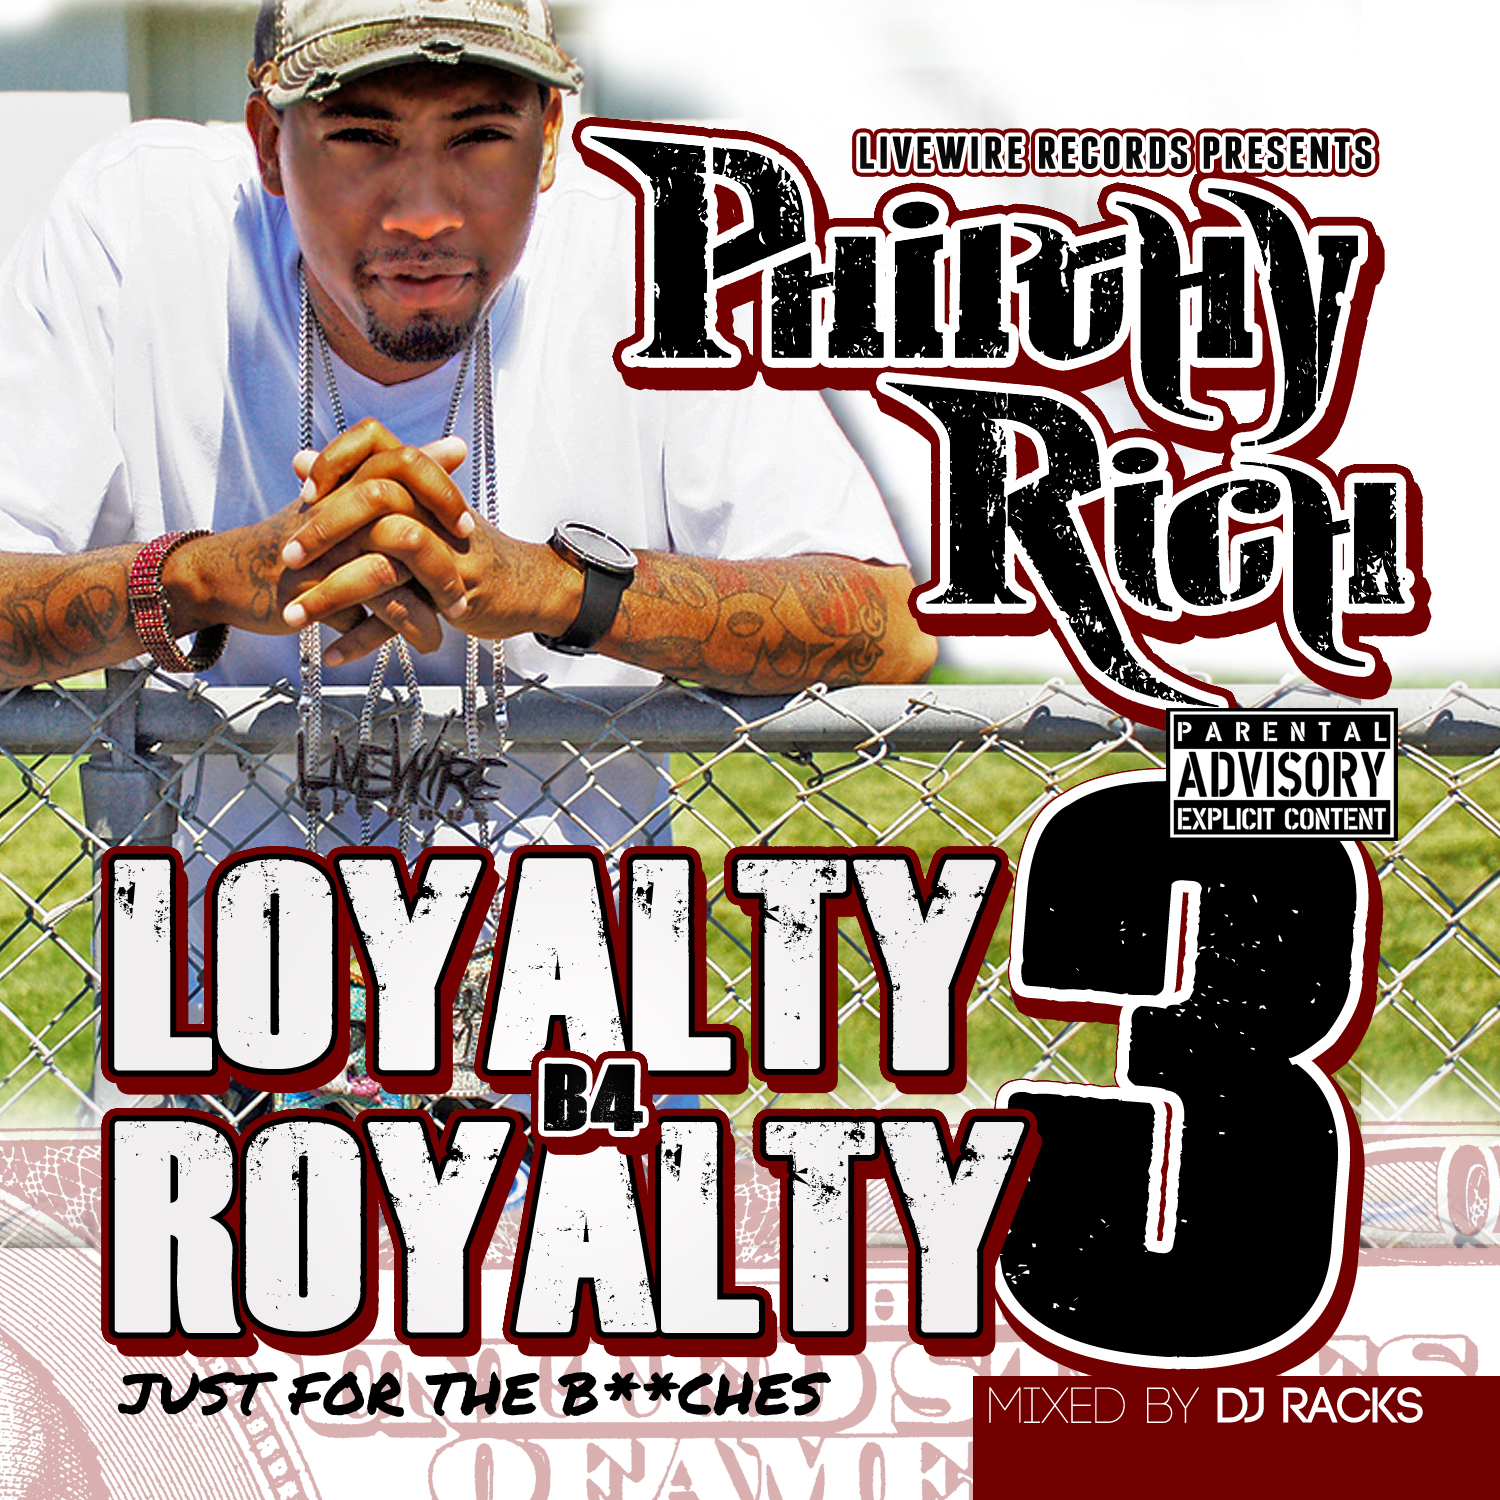 Philthy Rich - Loyalty B4 Royalty 3 (Just For The Bitches) Cover Art